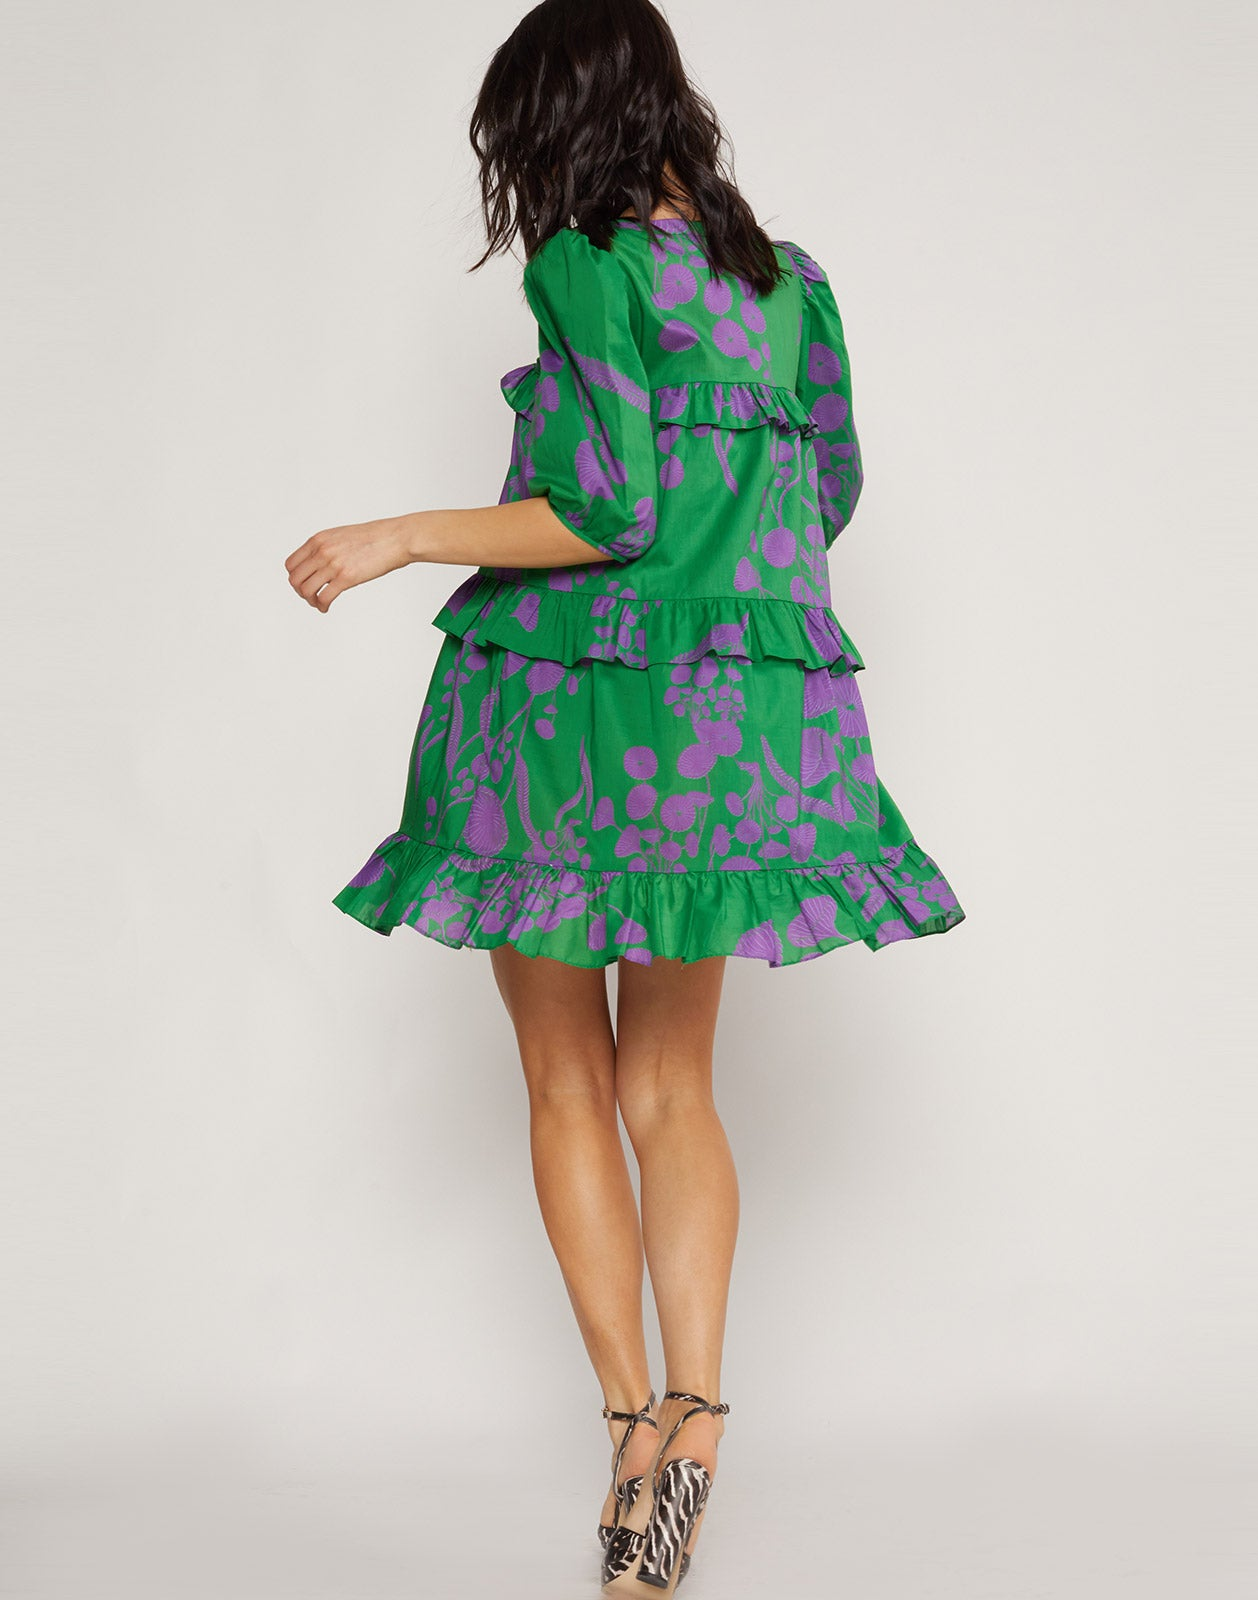 Back view of the Kuaii Ruffle Swing Dress